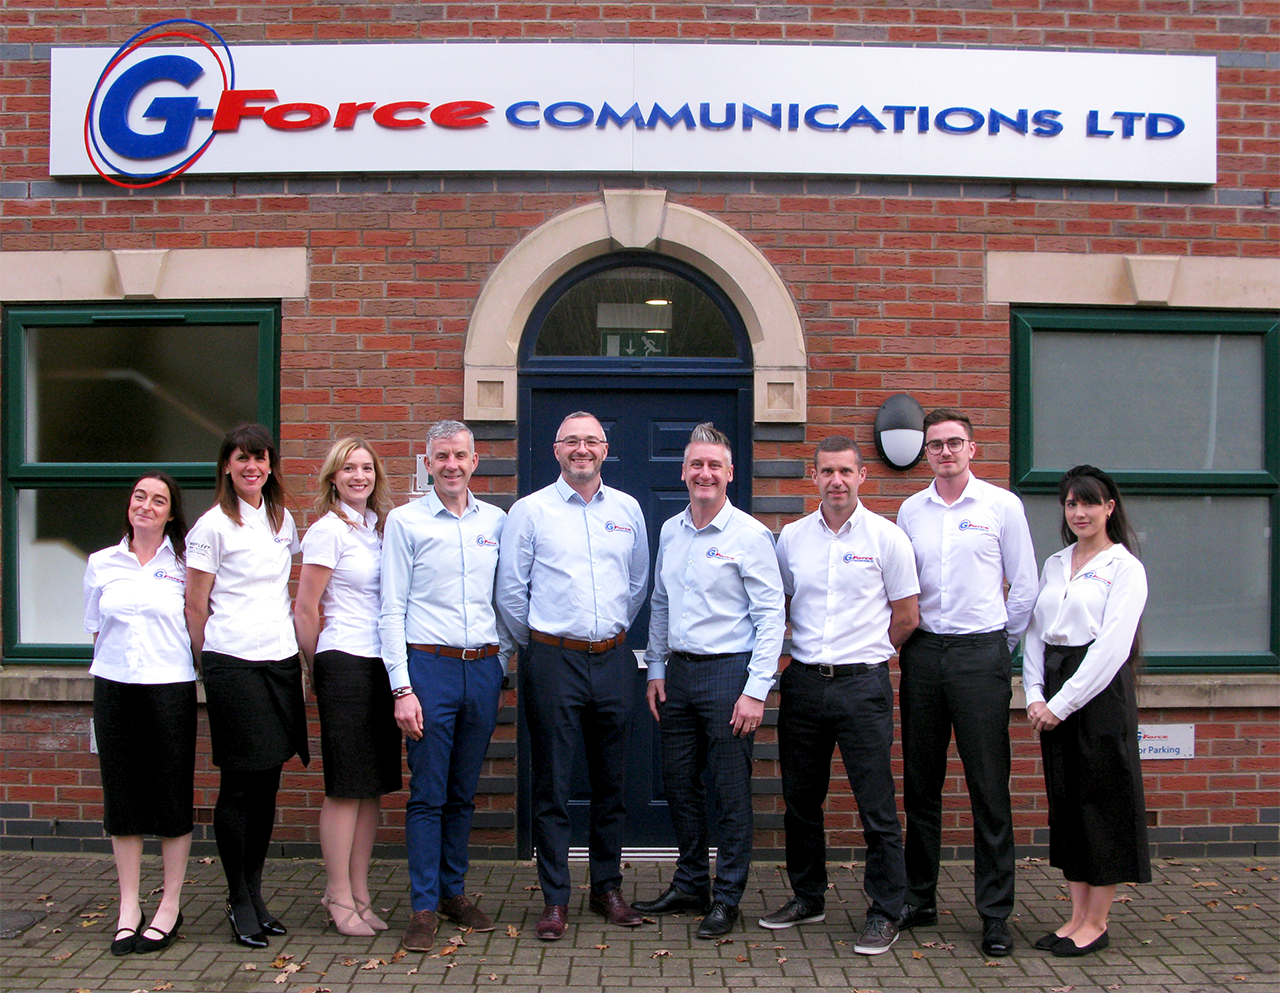 The G-Force Communications Team